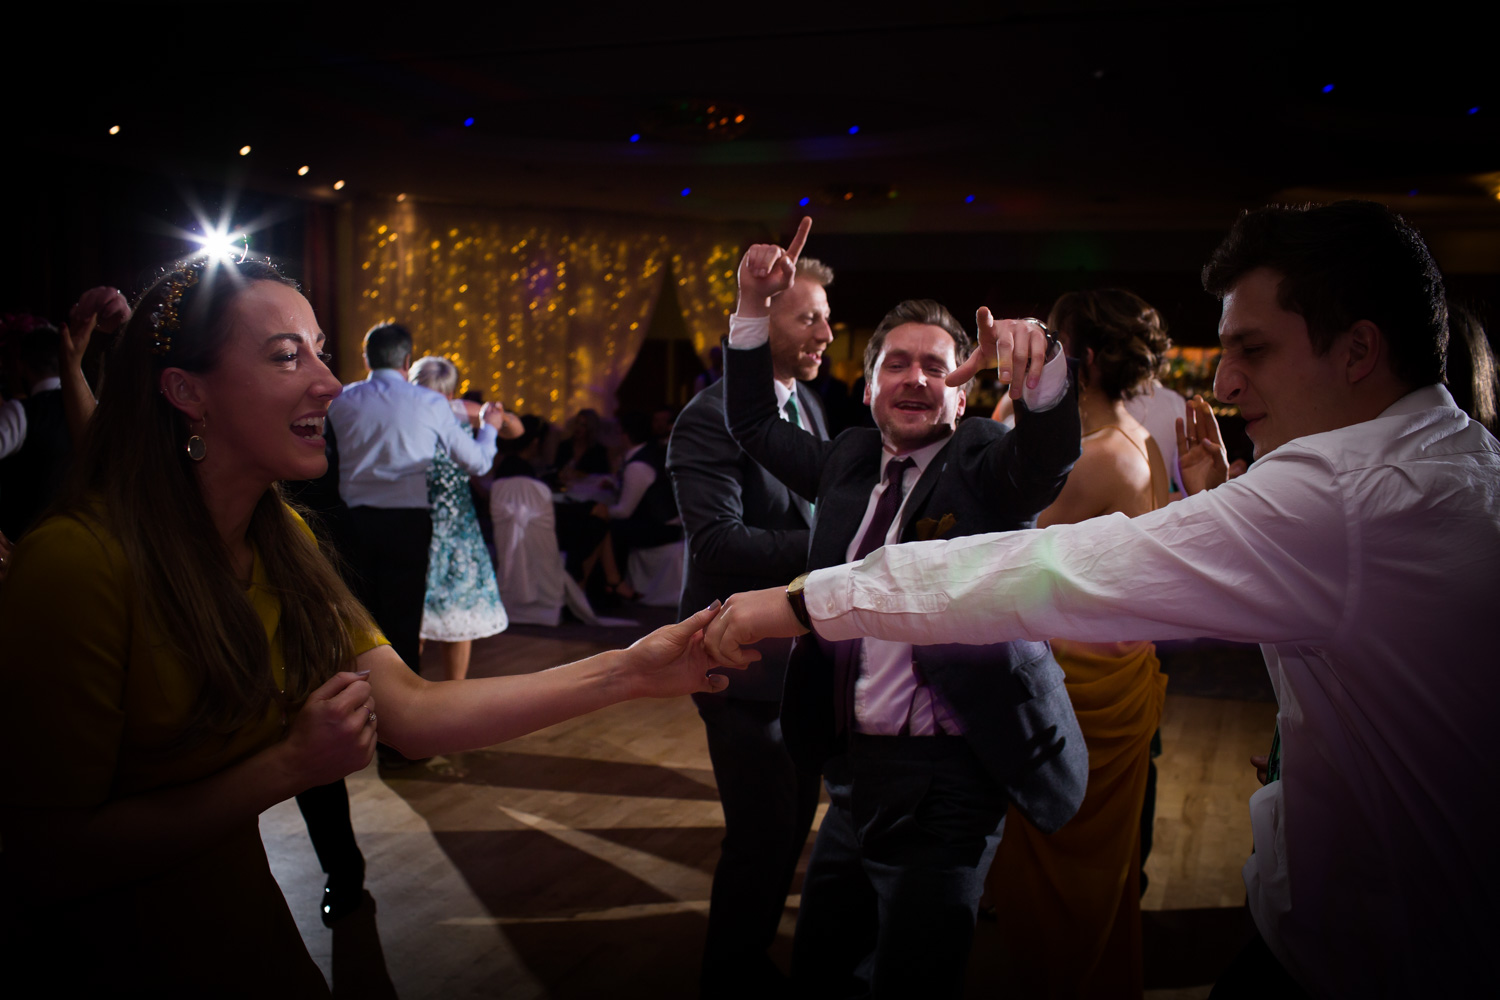 Mark_Barnes_Northern_Ireland_wedding_photographer_Innishowen_Gateway_Donegal_Wedding_photography_Donegal_wedding_photographer-76.jpg